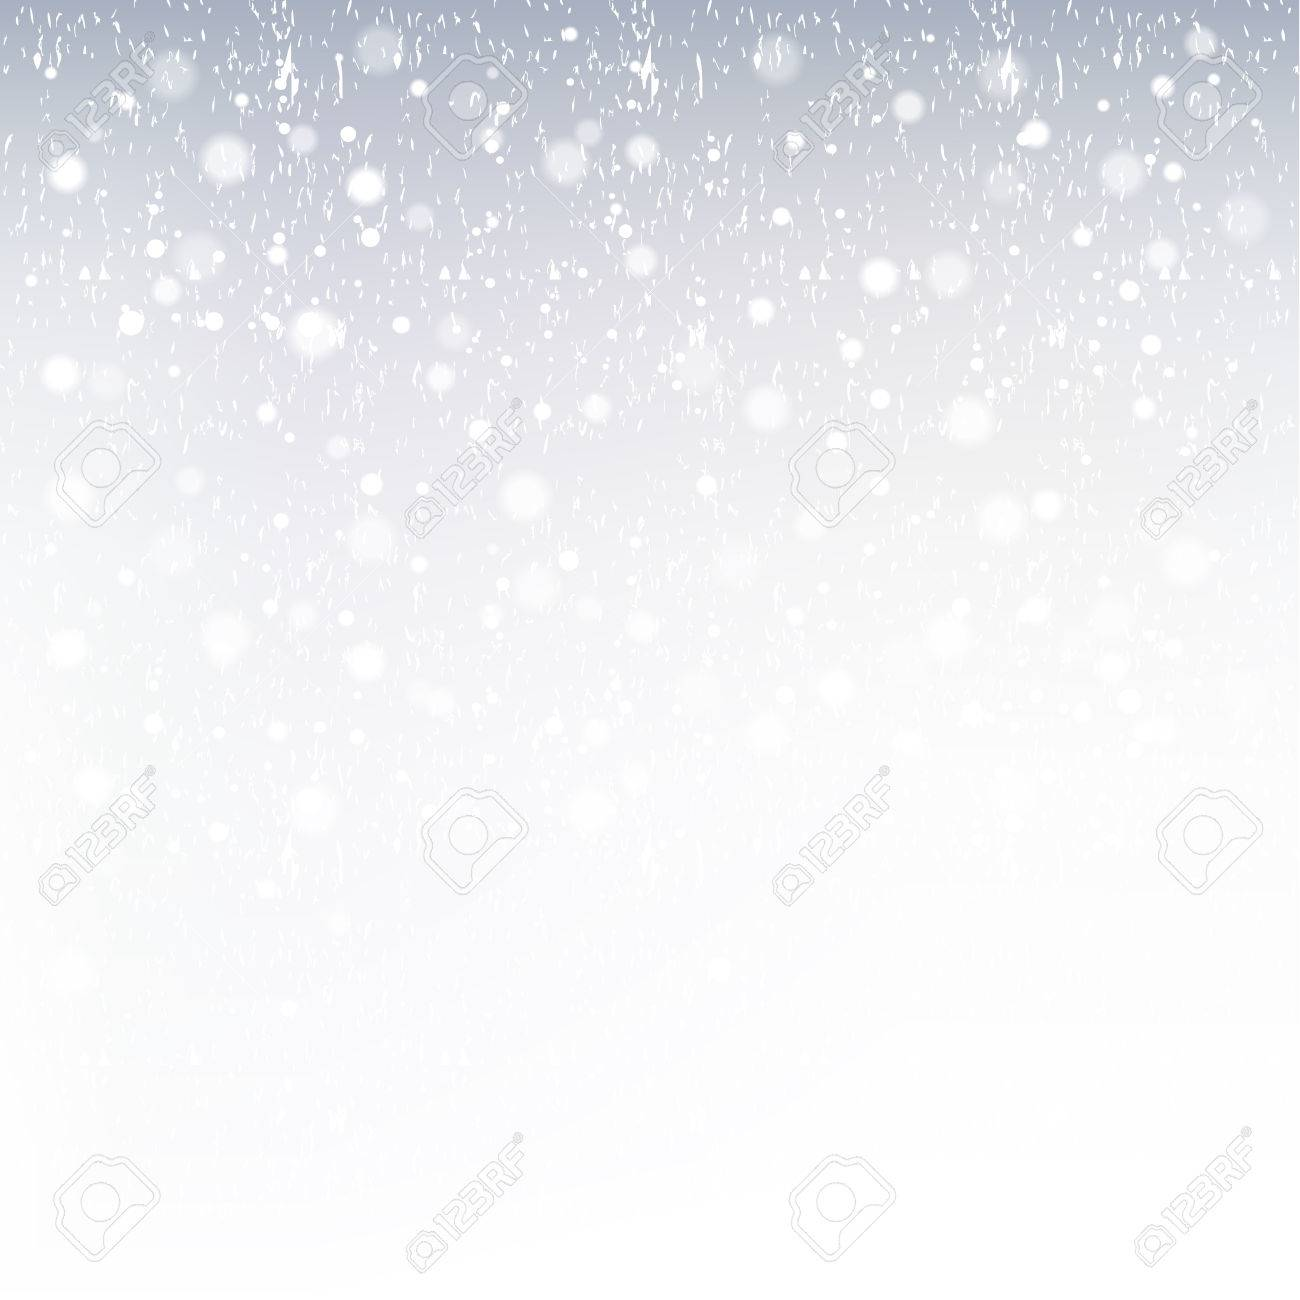 Clipart Snow No Background & Free Clip Art Images #29526.